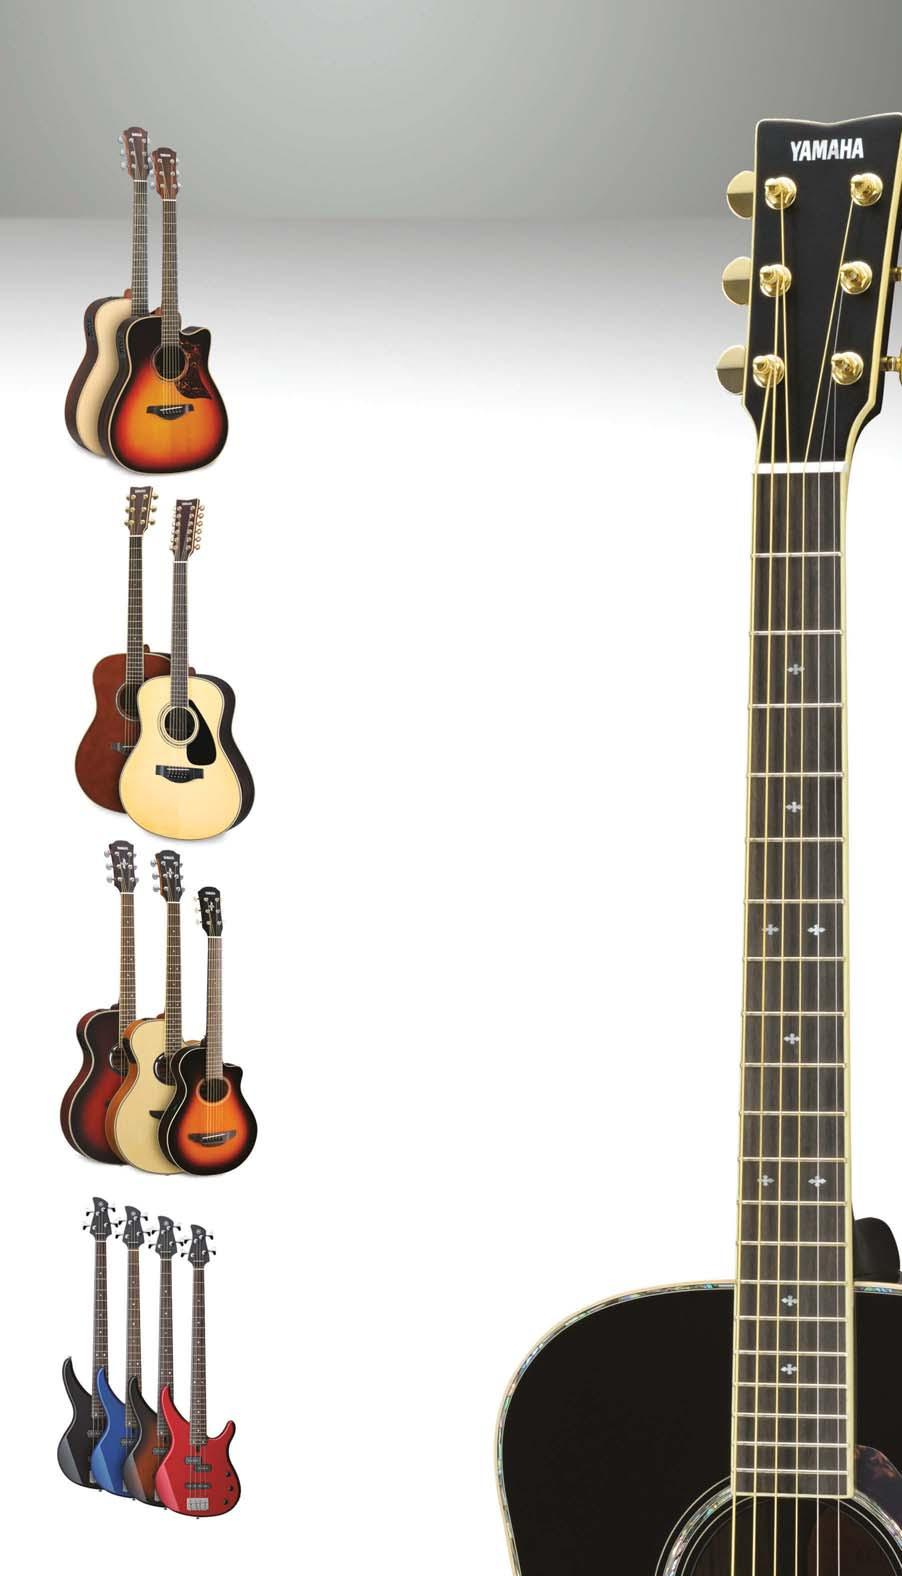 A-Series A-Series guitars are built to perform.